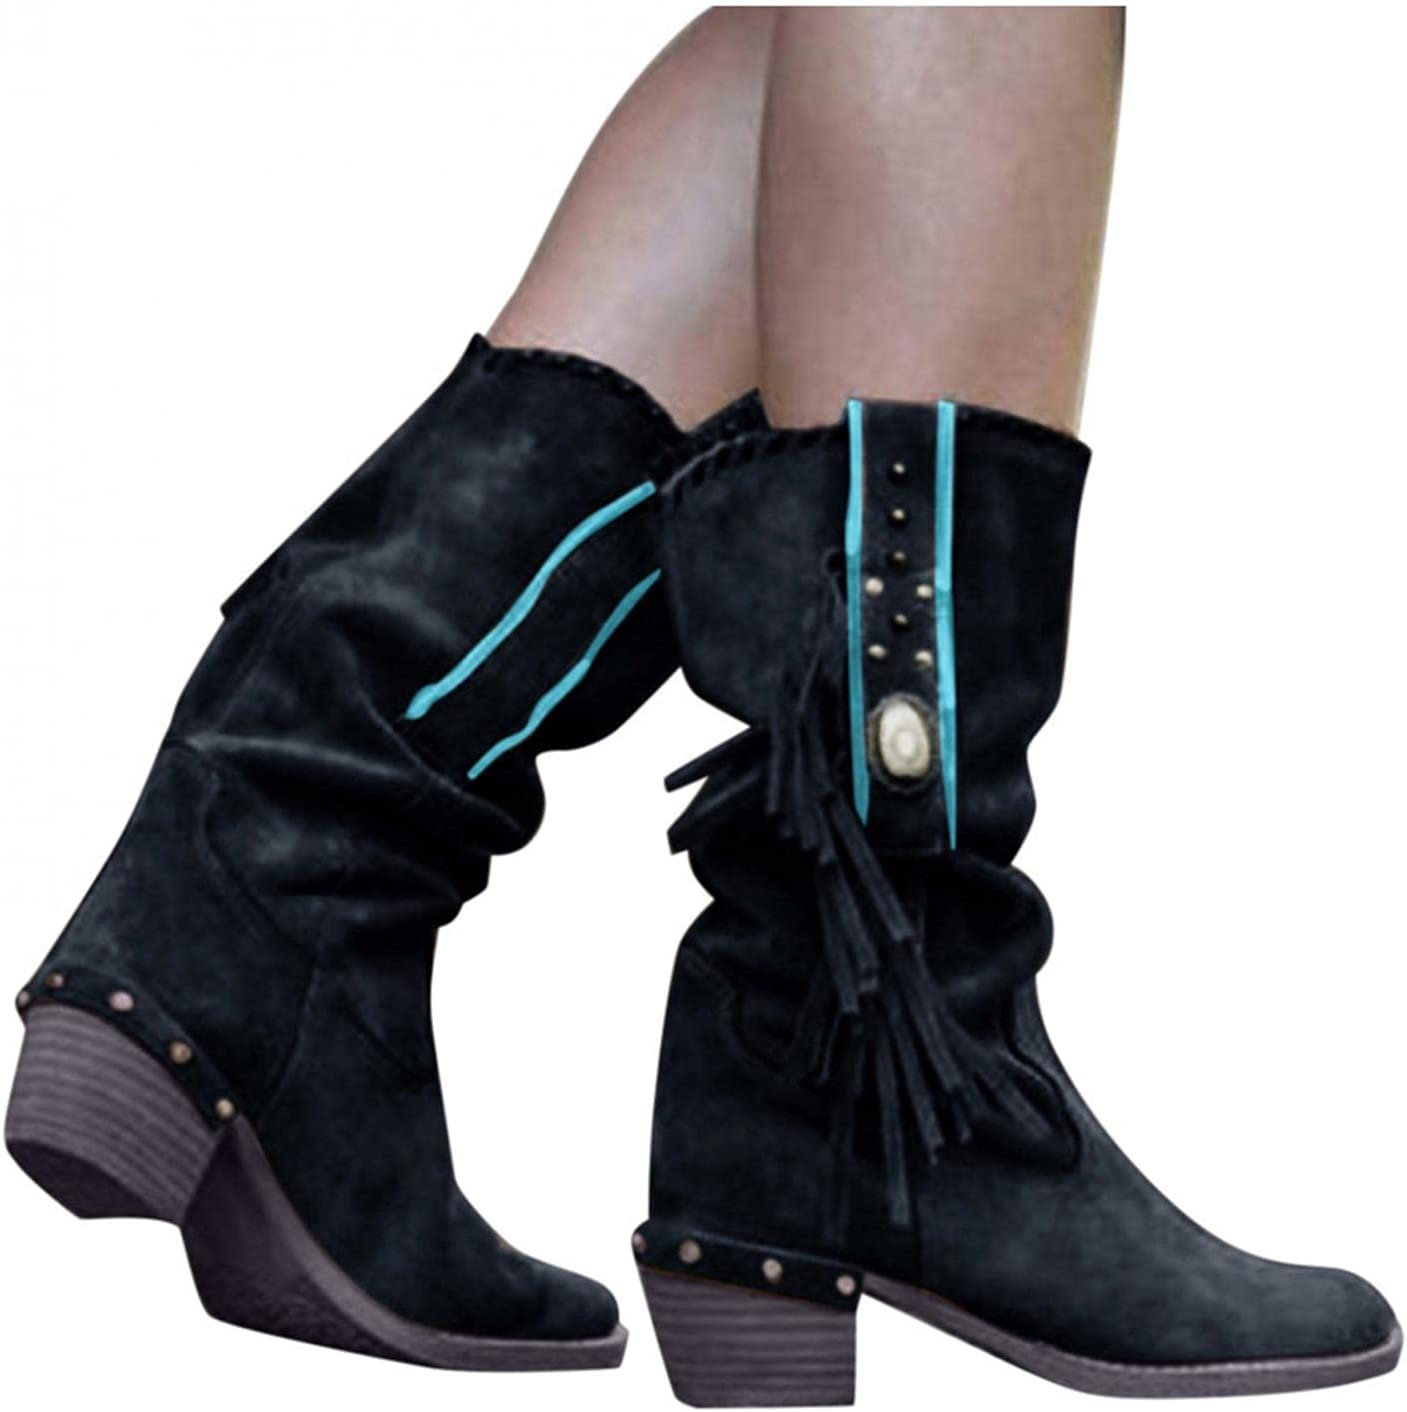 NOLDARES Cowboy Boots for Women Flock Tassels Hiking Studded Winter Pointed Toe Mid-Calf Boots Block Heel Suede Retro Boots